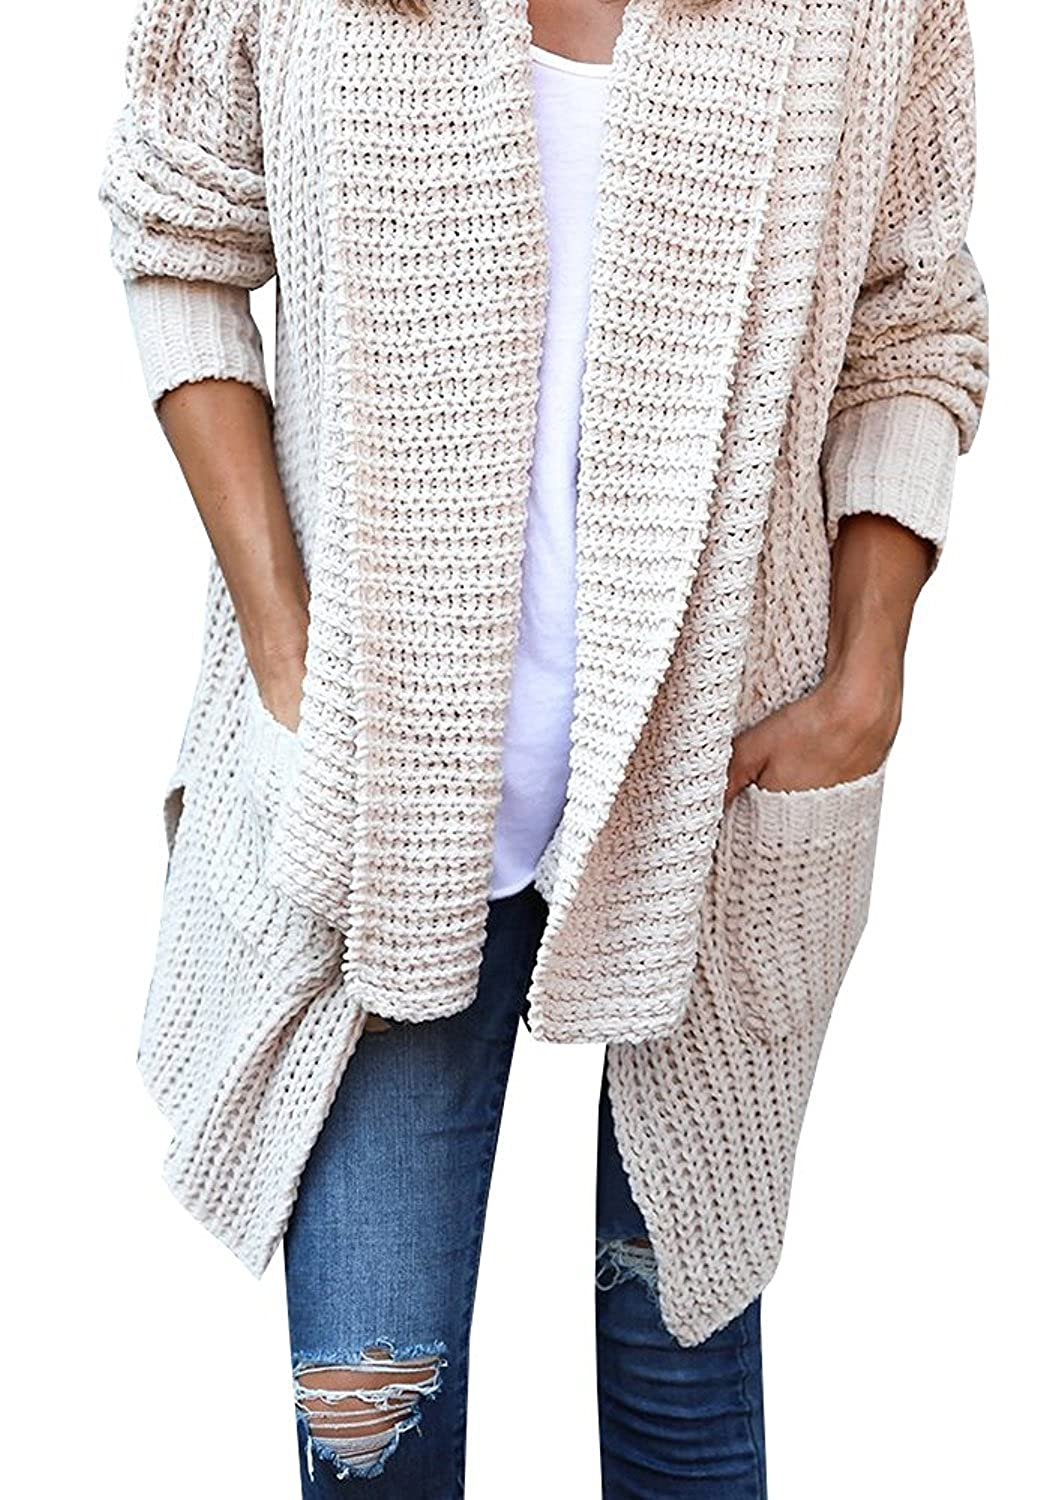 cd9969a13 VOKY Women Comfy Cozy Pocketed Cardigan Long Sleeve Knitted Sweater Outwear  at Amazon Women s Clothing store